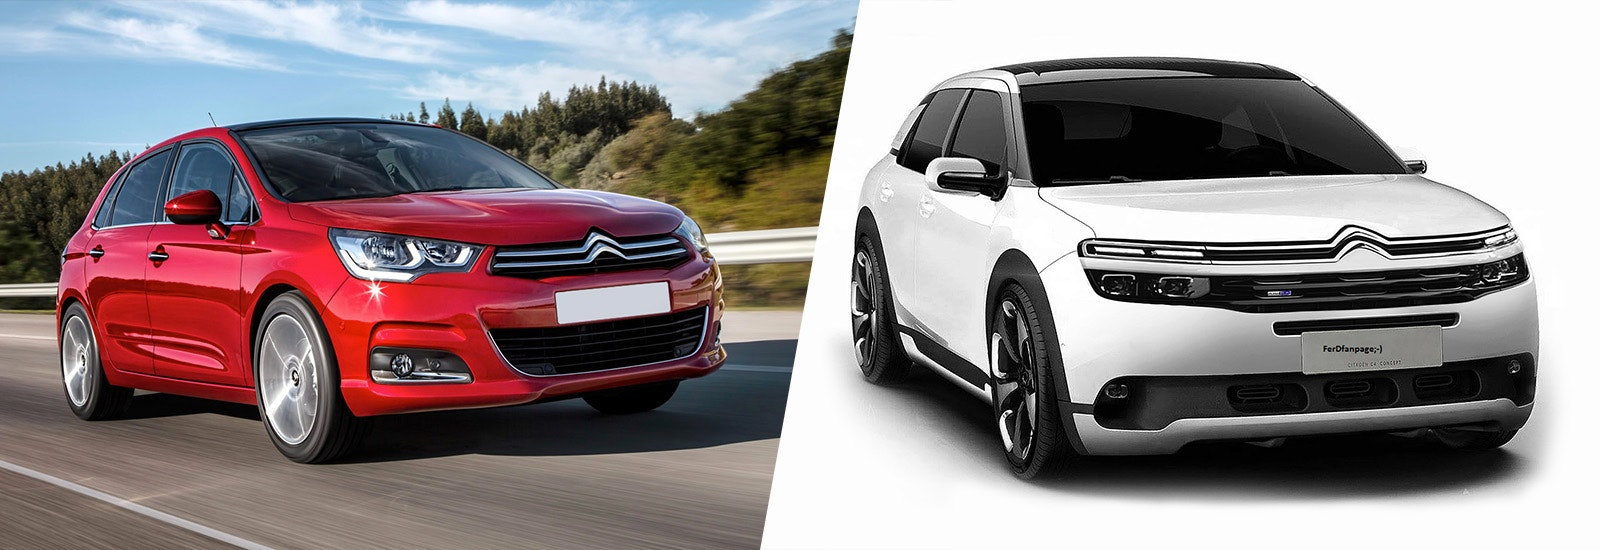 New Citroen C4 >> 2018 Citroen C4 Price Specs And Release Date Carwow